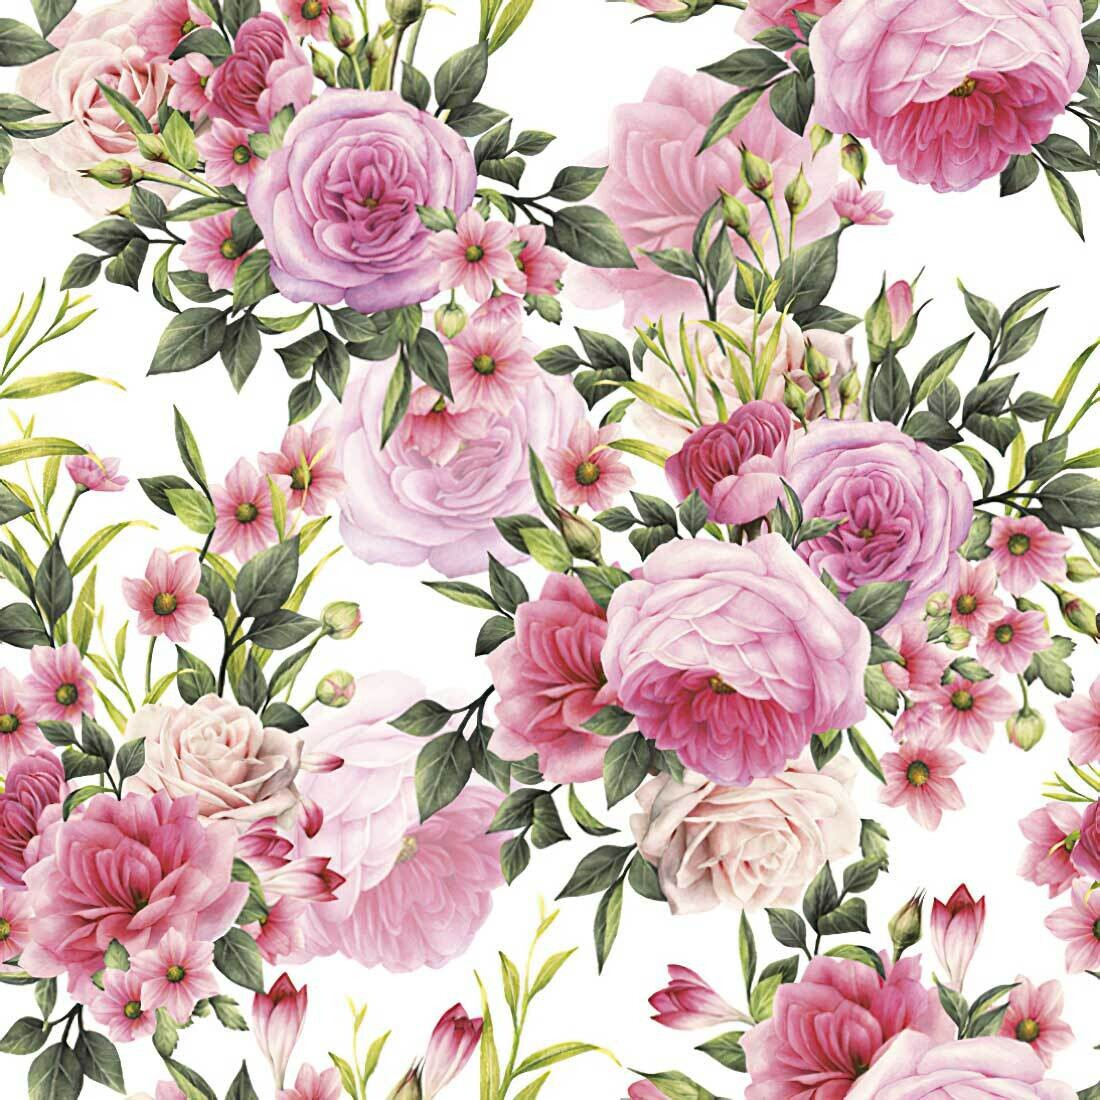 Decoupage Paper Napkins - Floral - Rose Twigs with Leaves and Flowers  (1 Sheet)